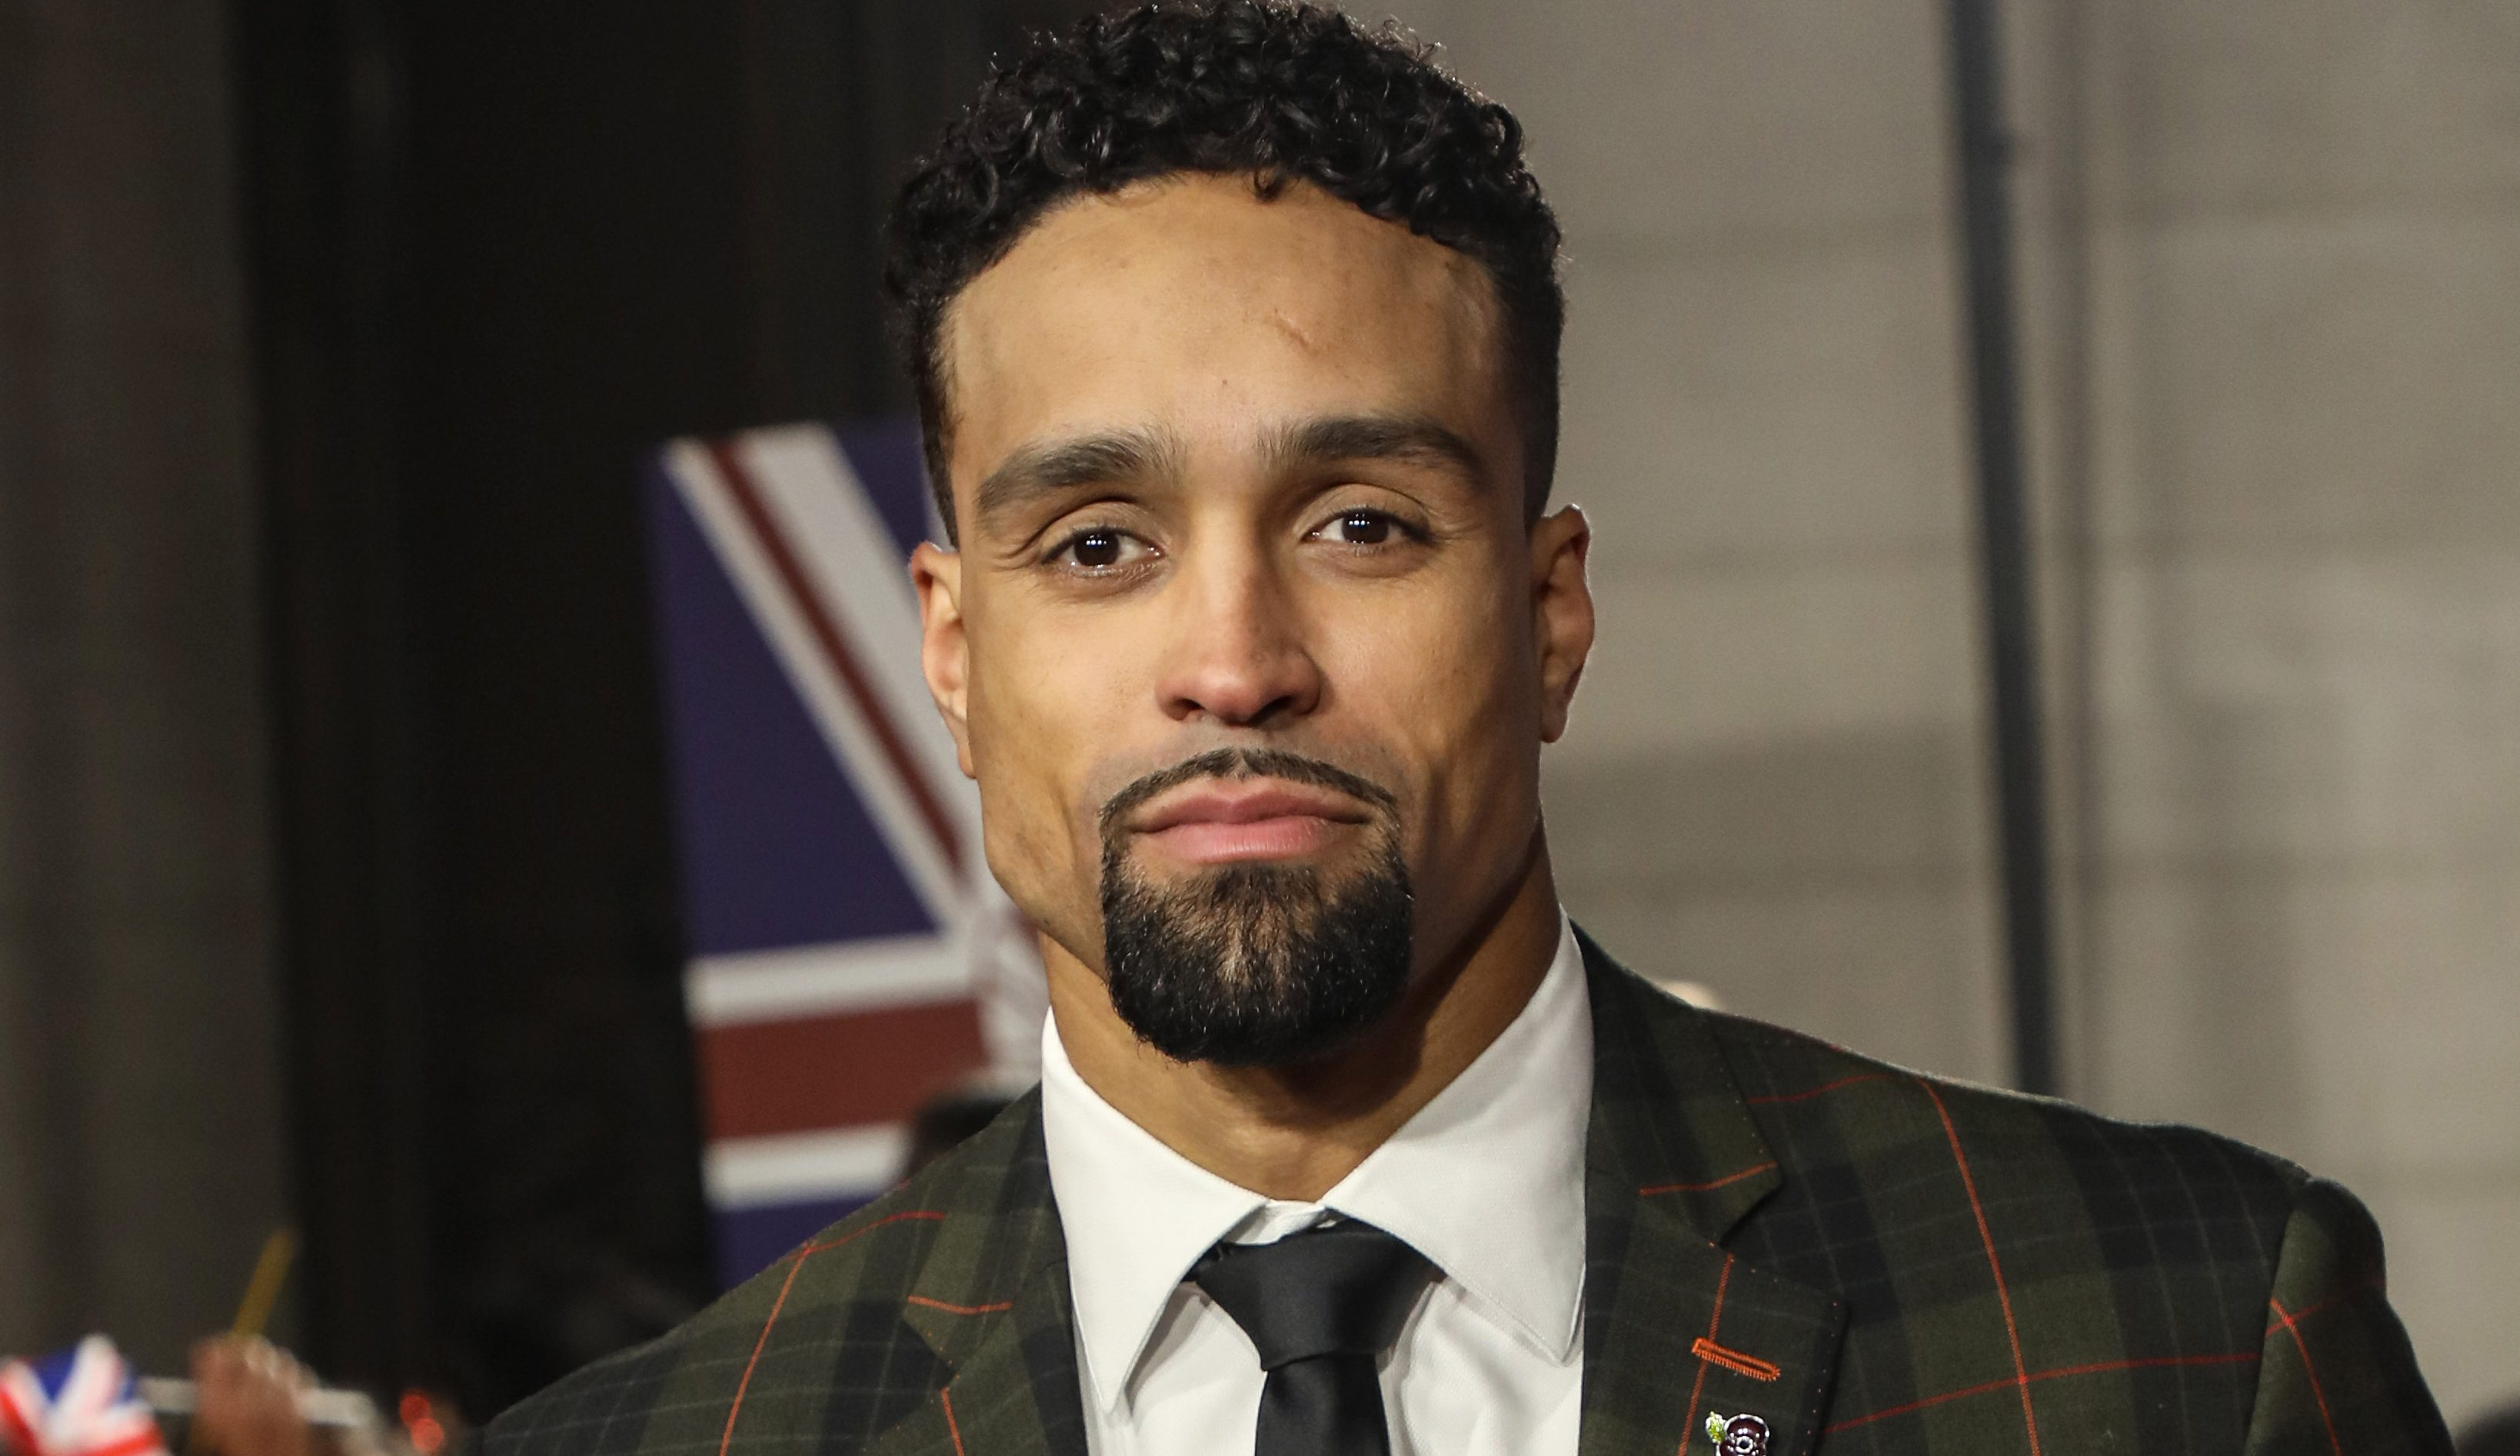 Ashley Banjo hits back at Twitter follower who accused him of 'not bothering' with his fans